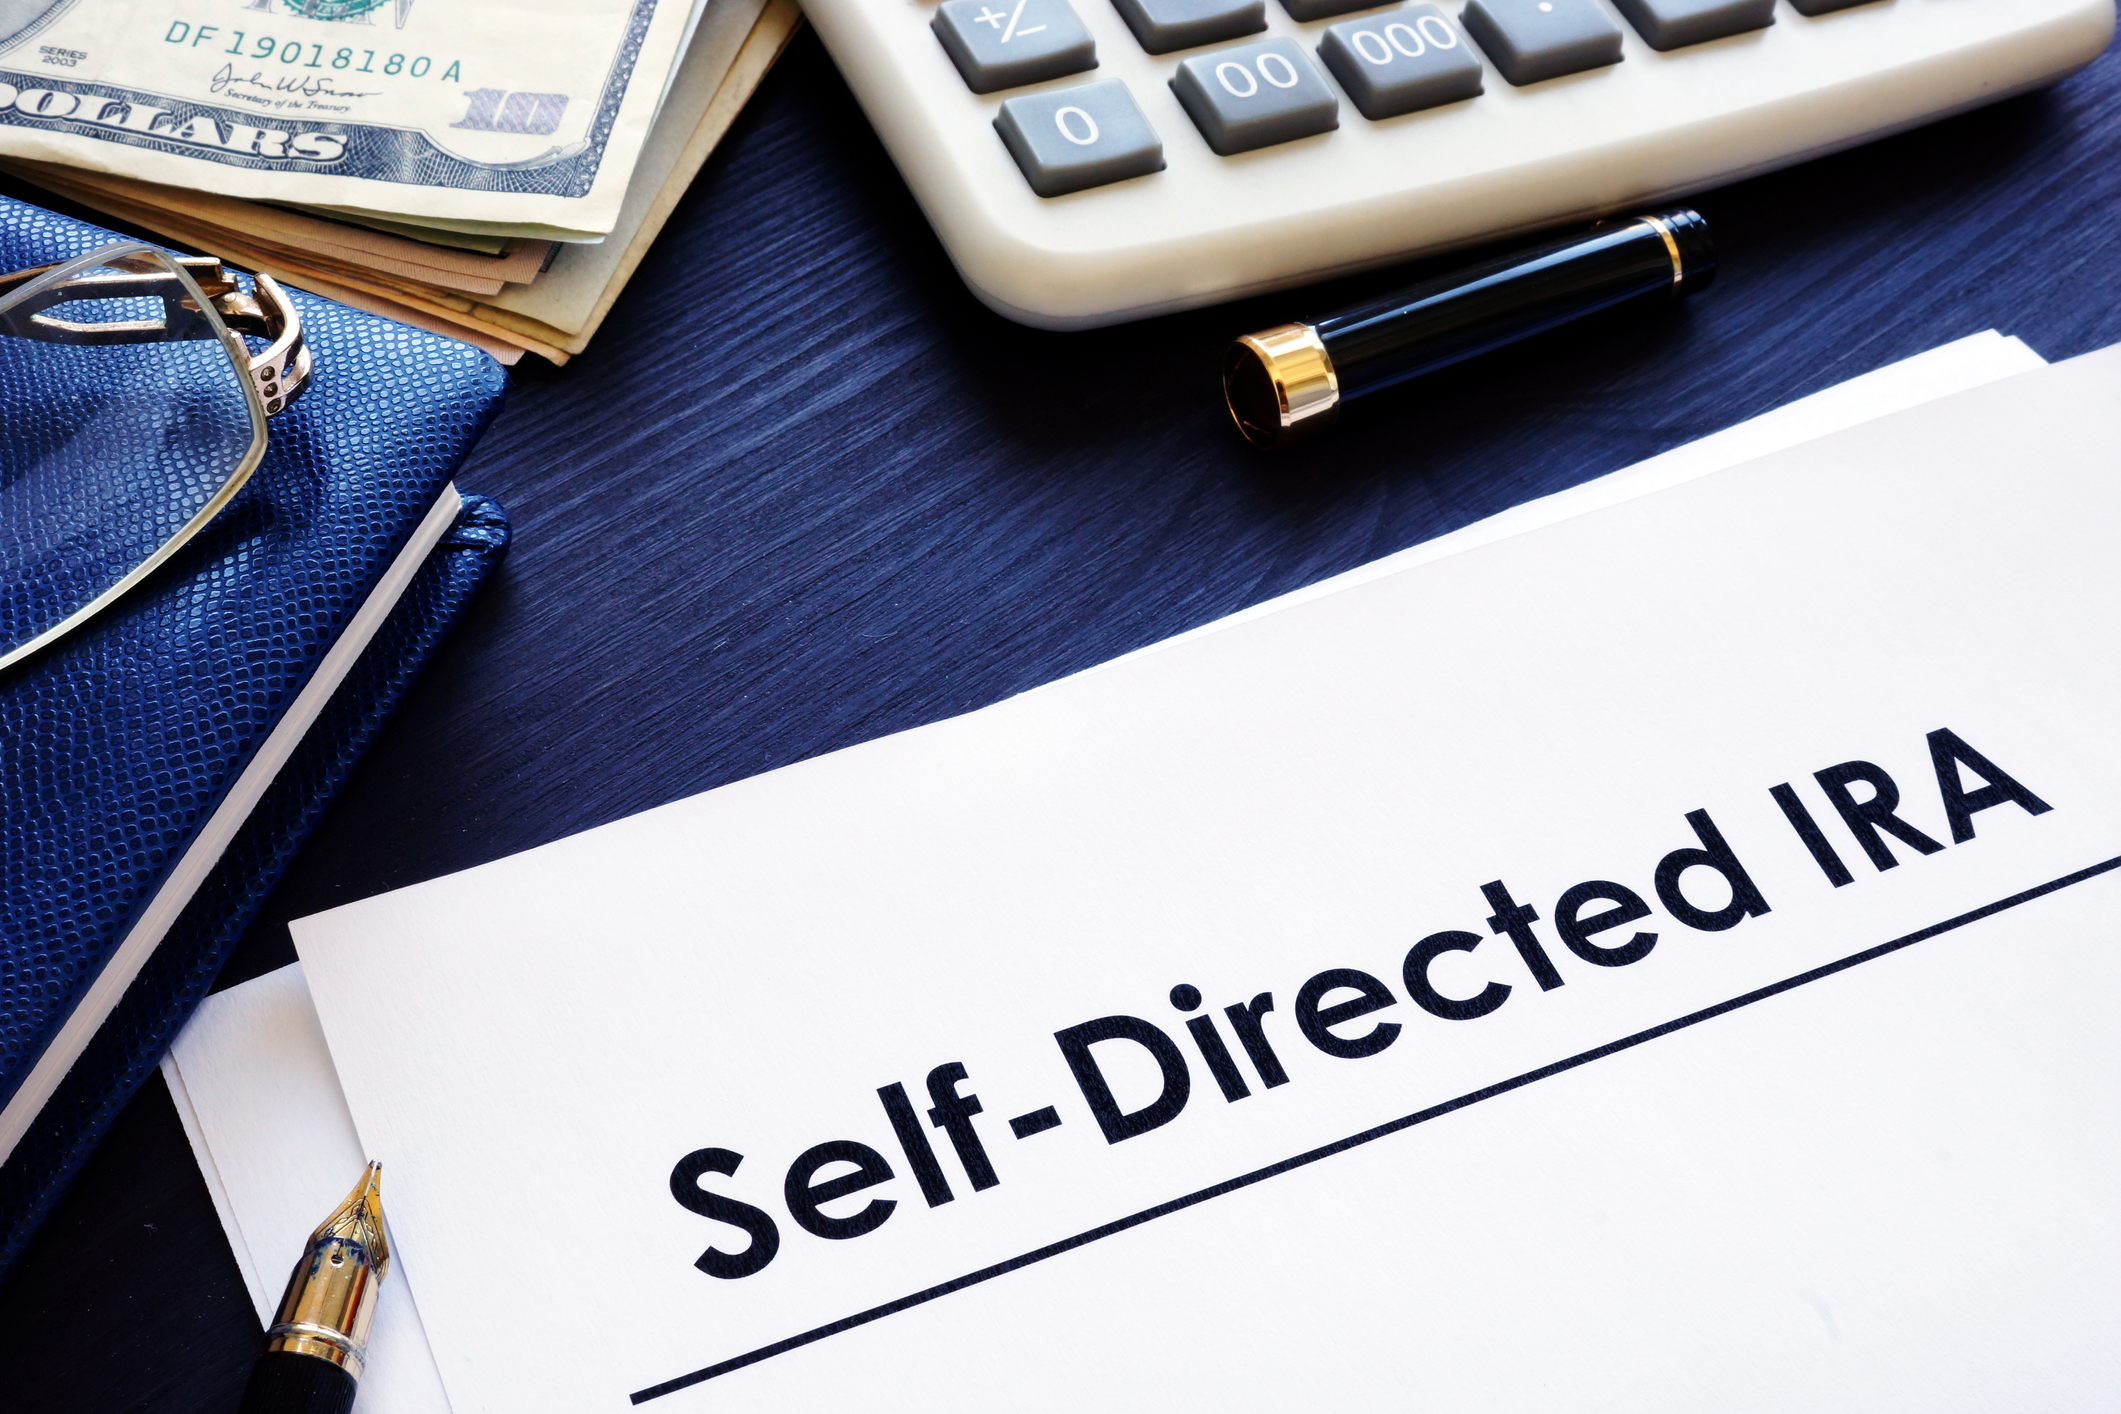 Self directed investments silicon valley venture capital investments